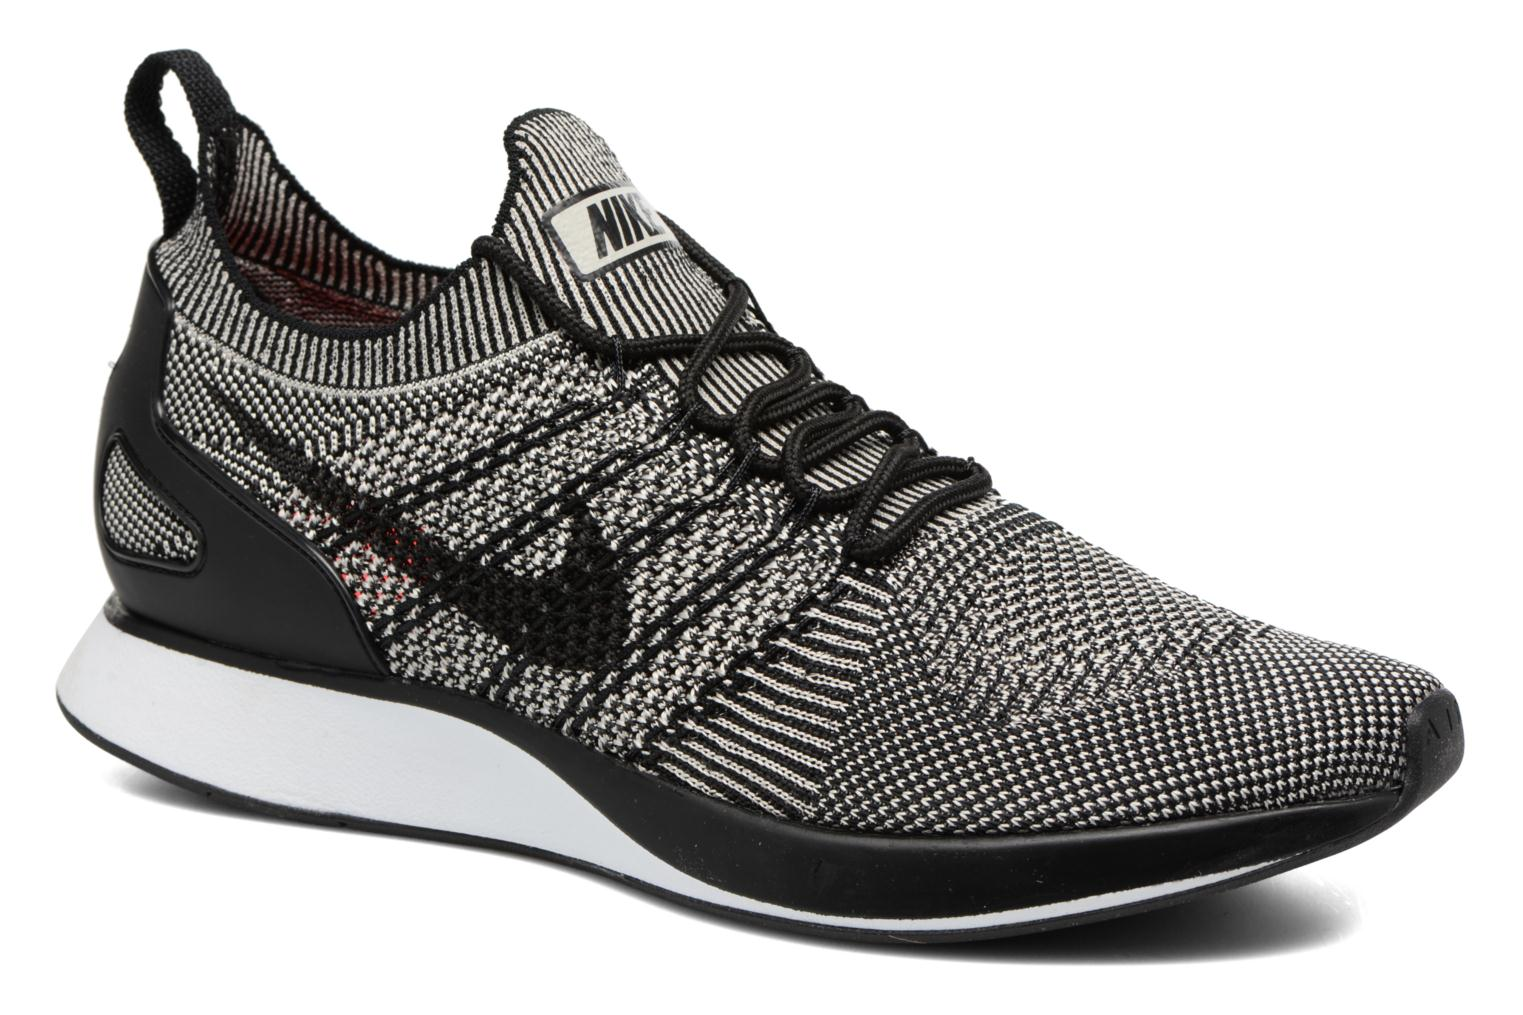 Air Zoom Mariah Flyknit Racer Pale Grey/Black-Solar Red-White